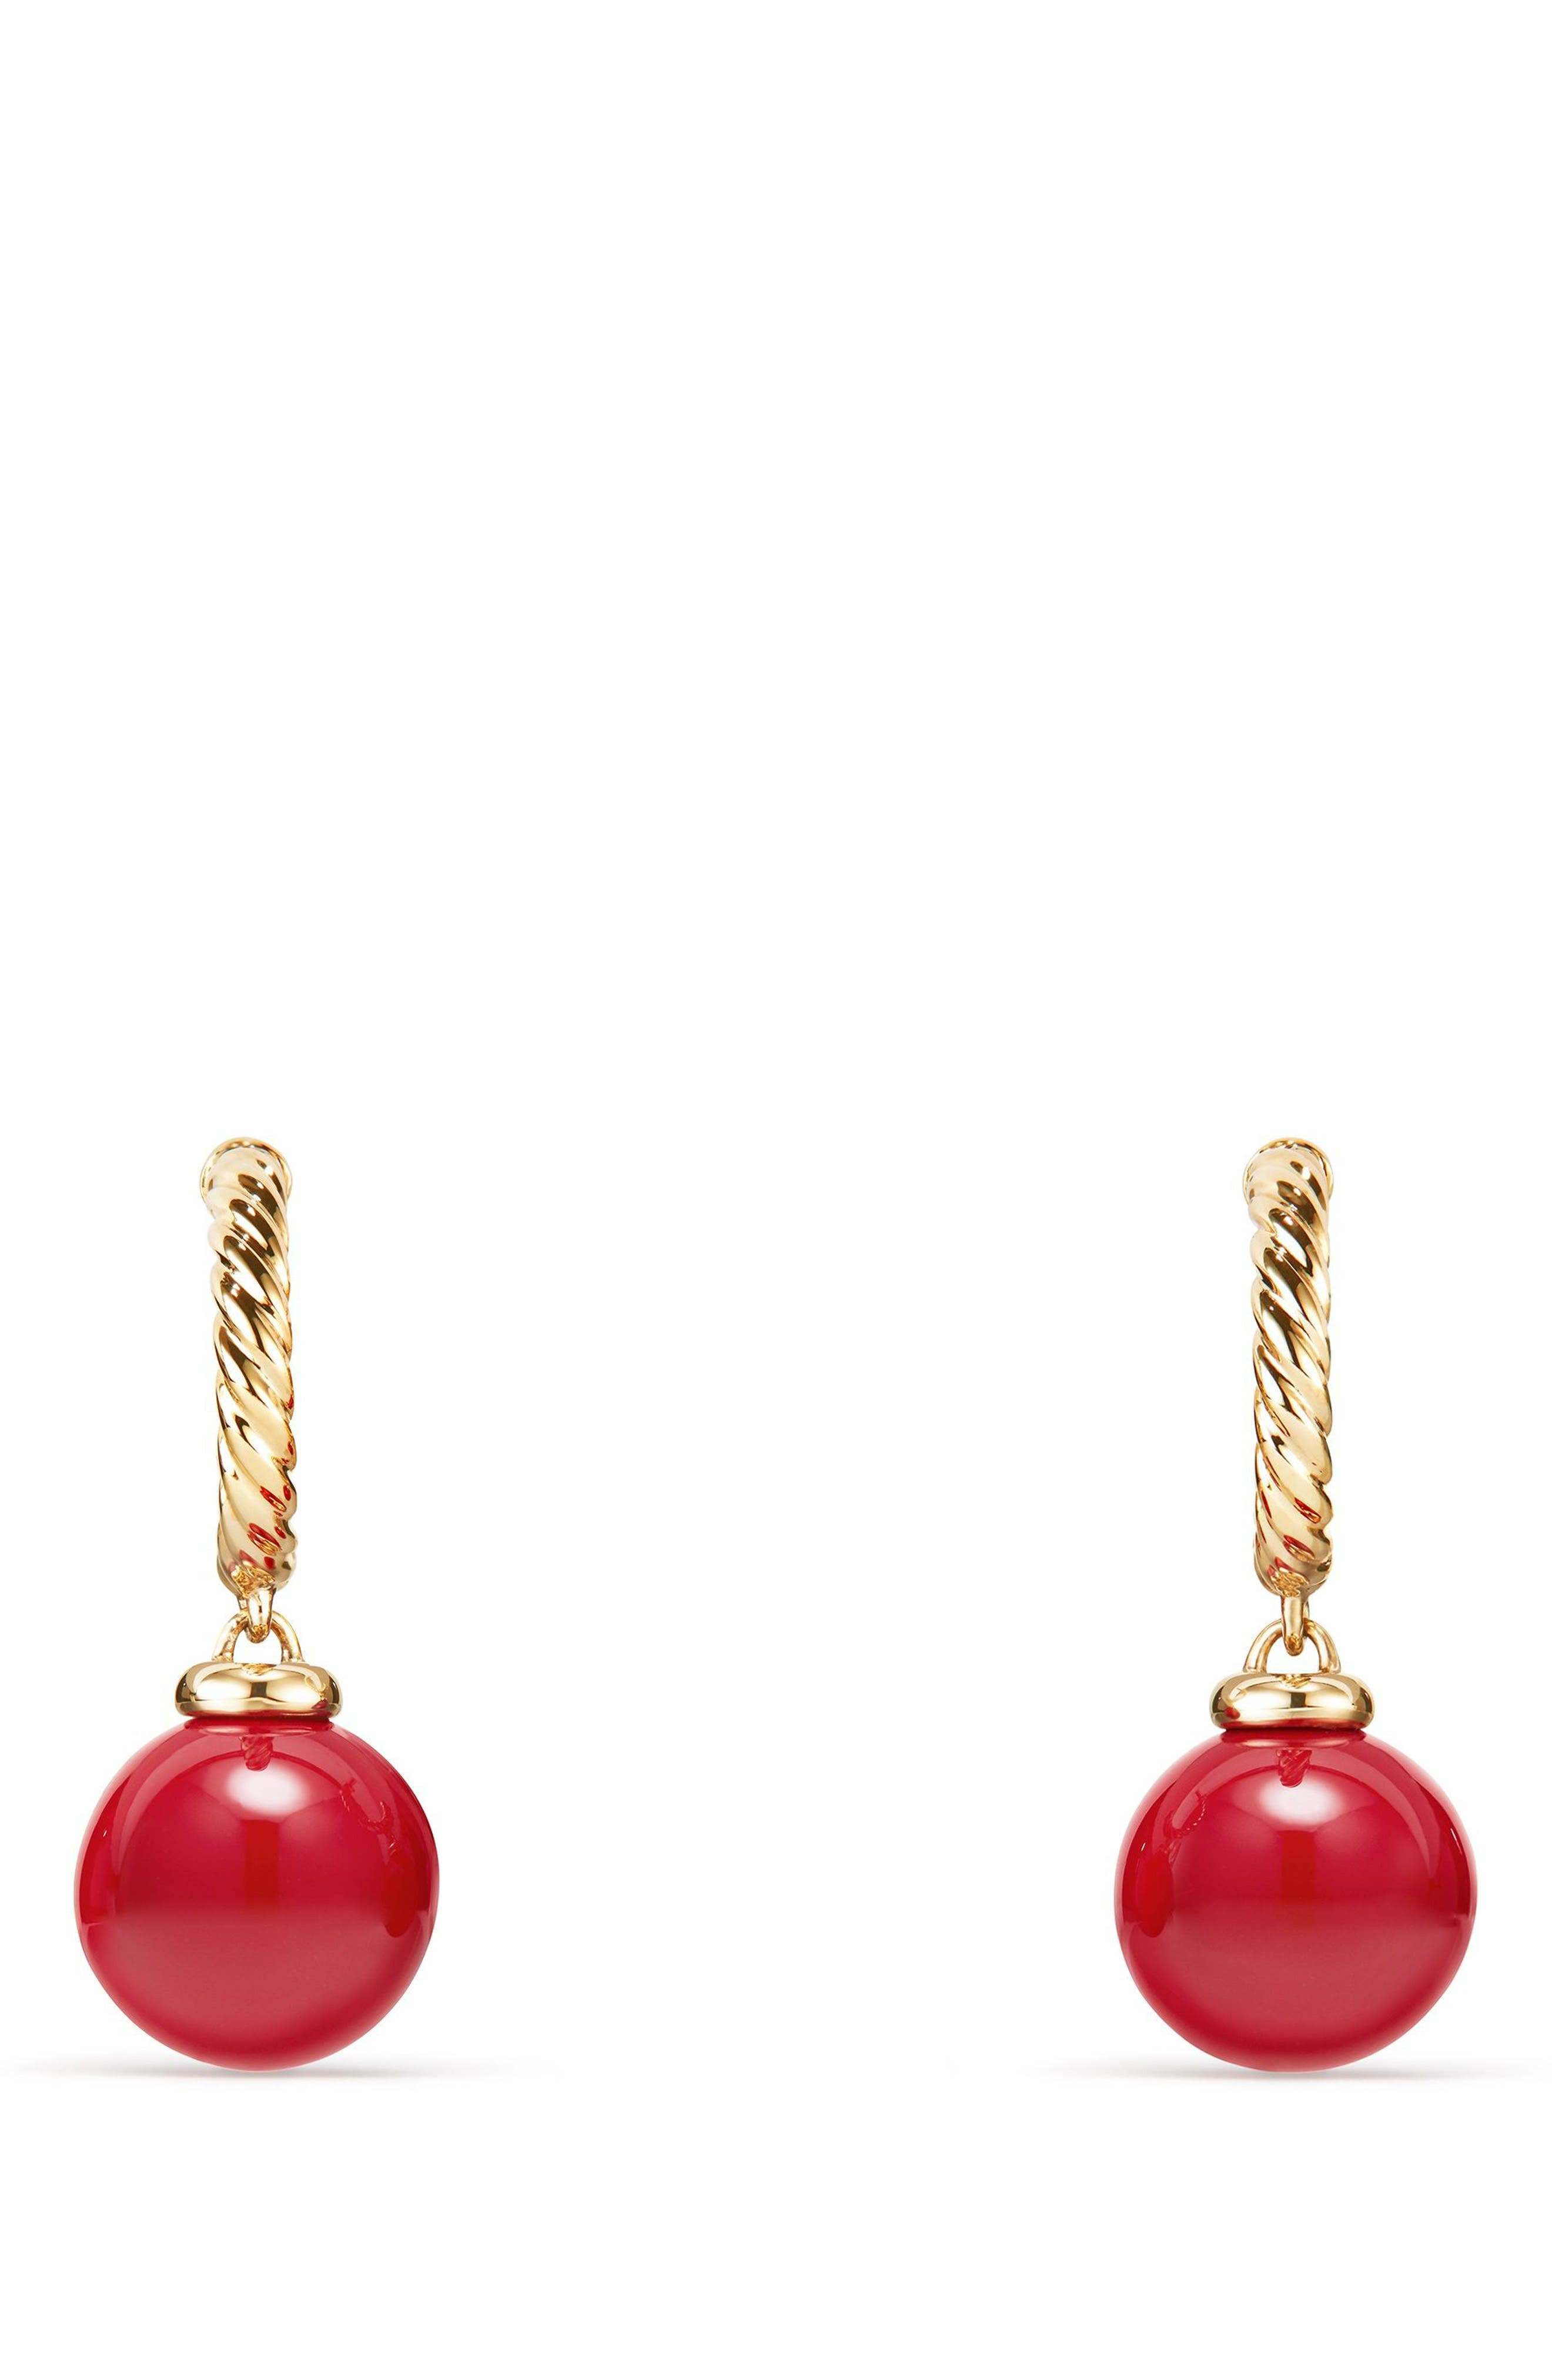 Solari Hoop Earrings with 18K Gold and Red Enamel,                             Alternate thumbnail 3, color,                             710